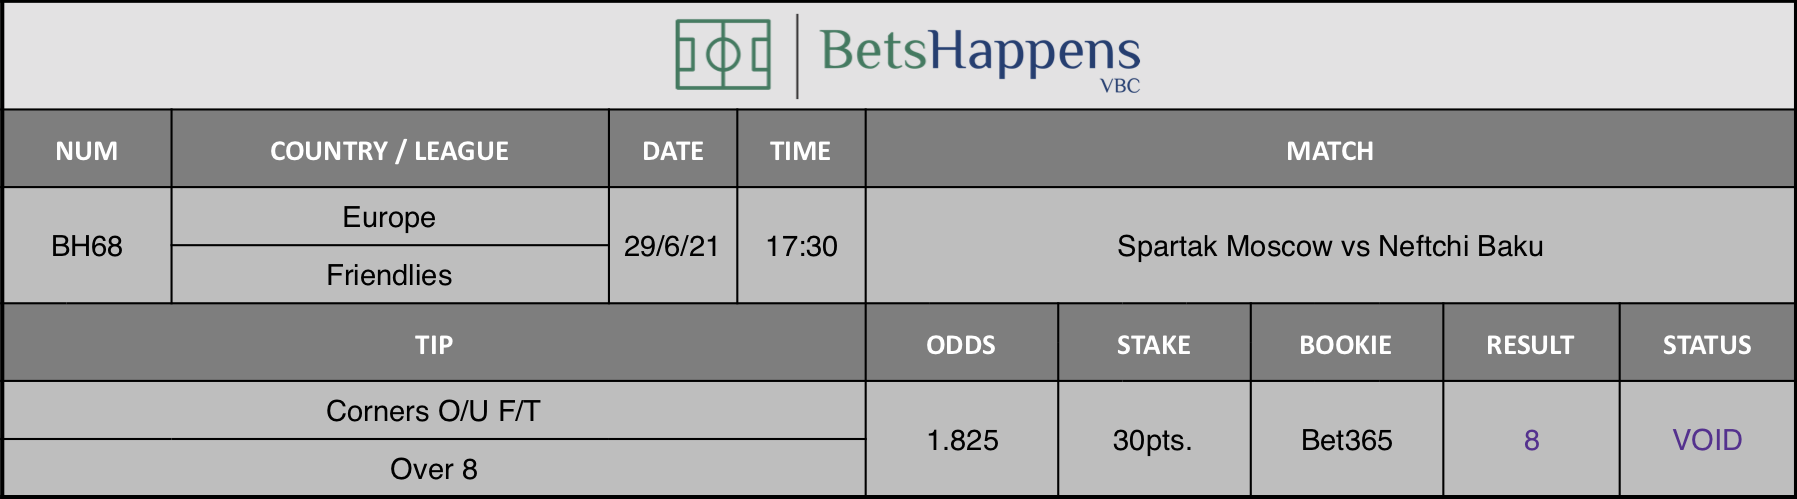 Results of our tip for the Spartak Moscow vs Neftchi Baku match Corners O/U F/T Over 8 is recommended.